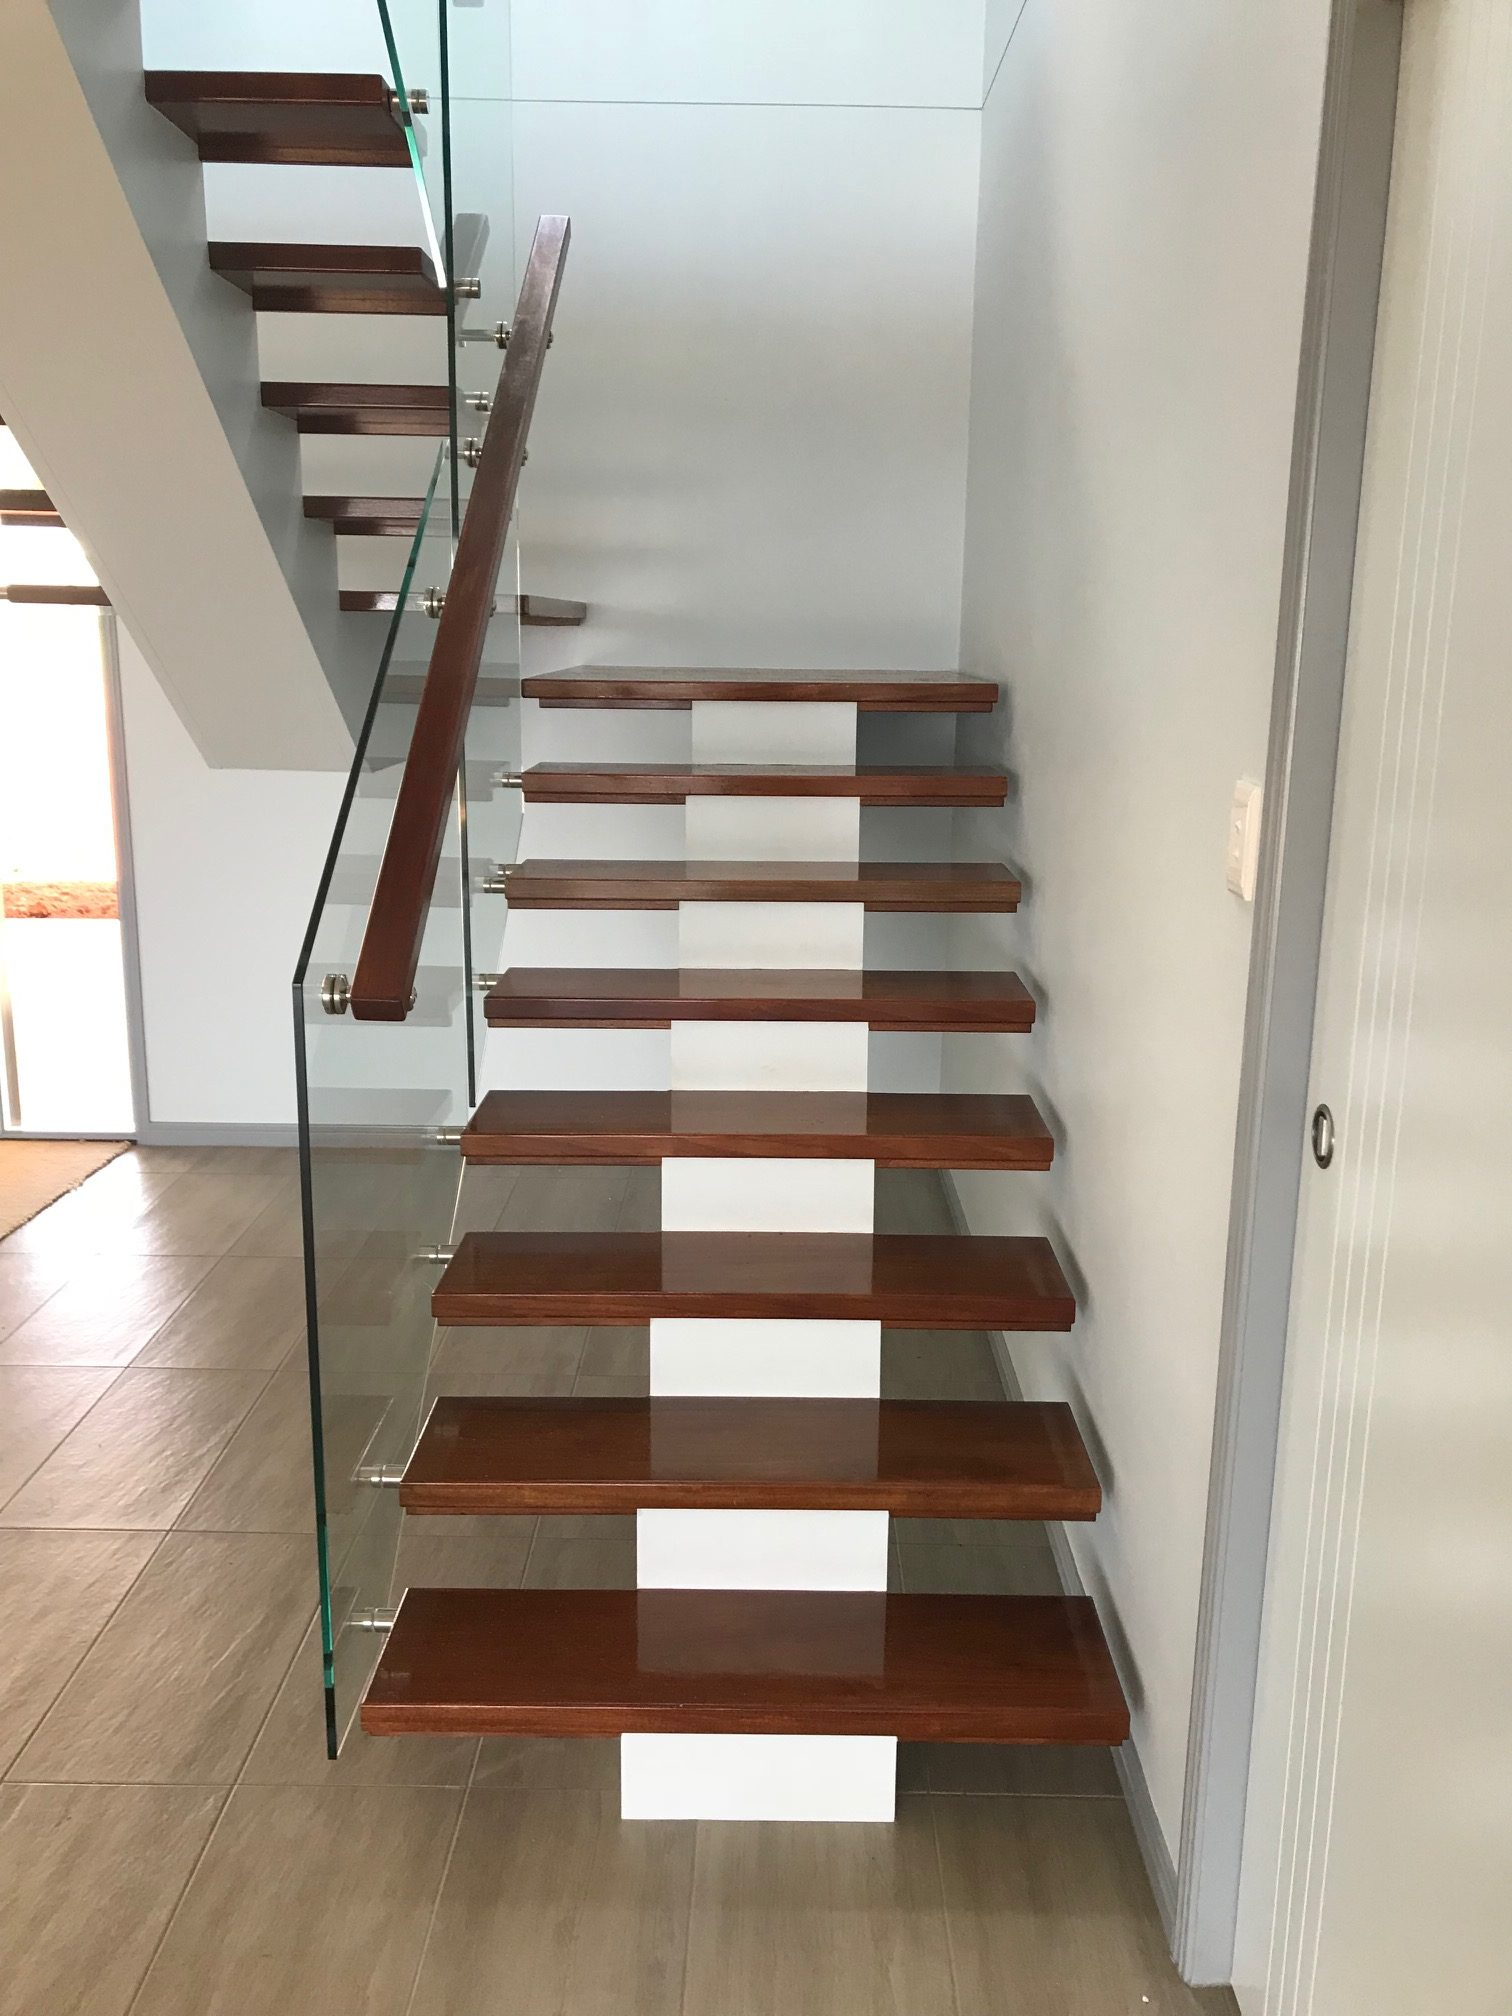 Picture of: Queensland Stairs Formerly Palm Beach And Wide Bay Stairs